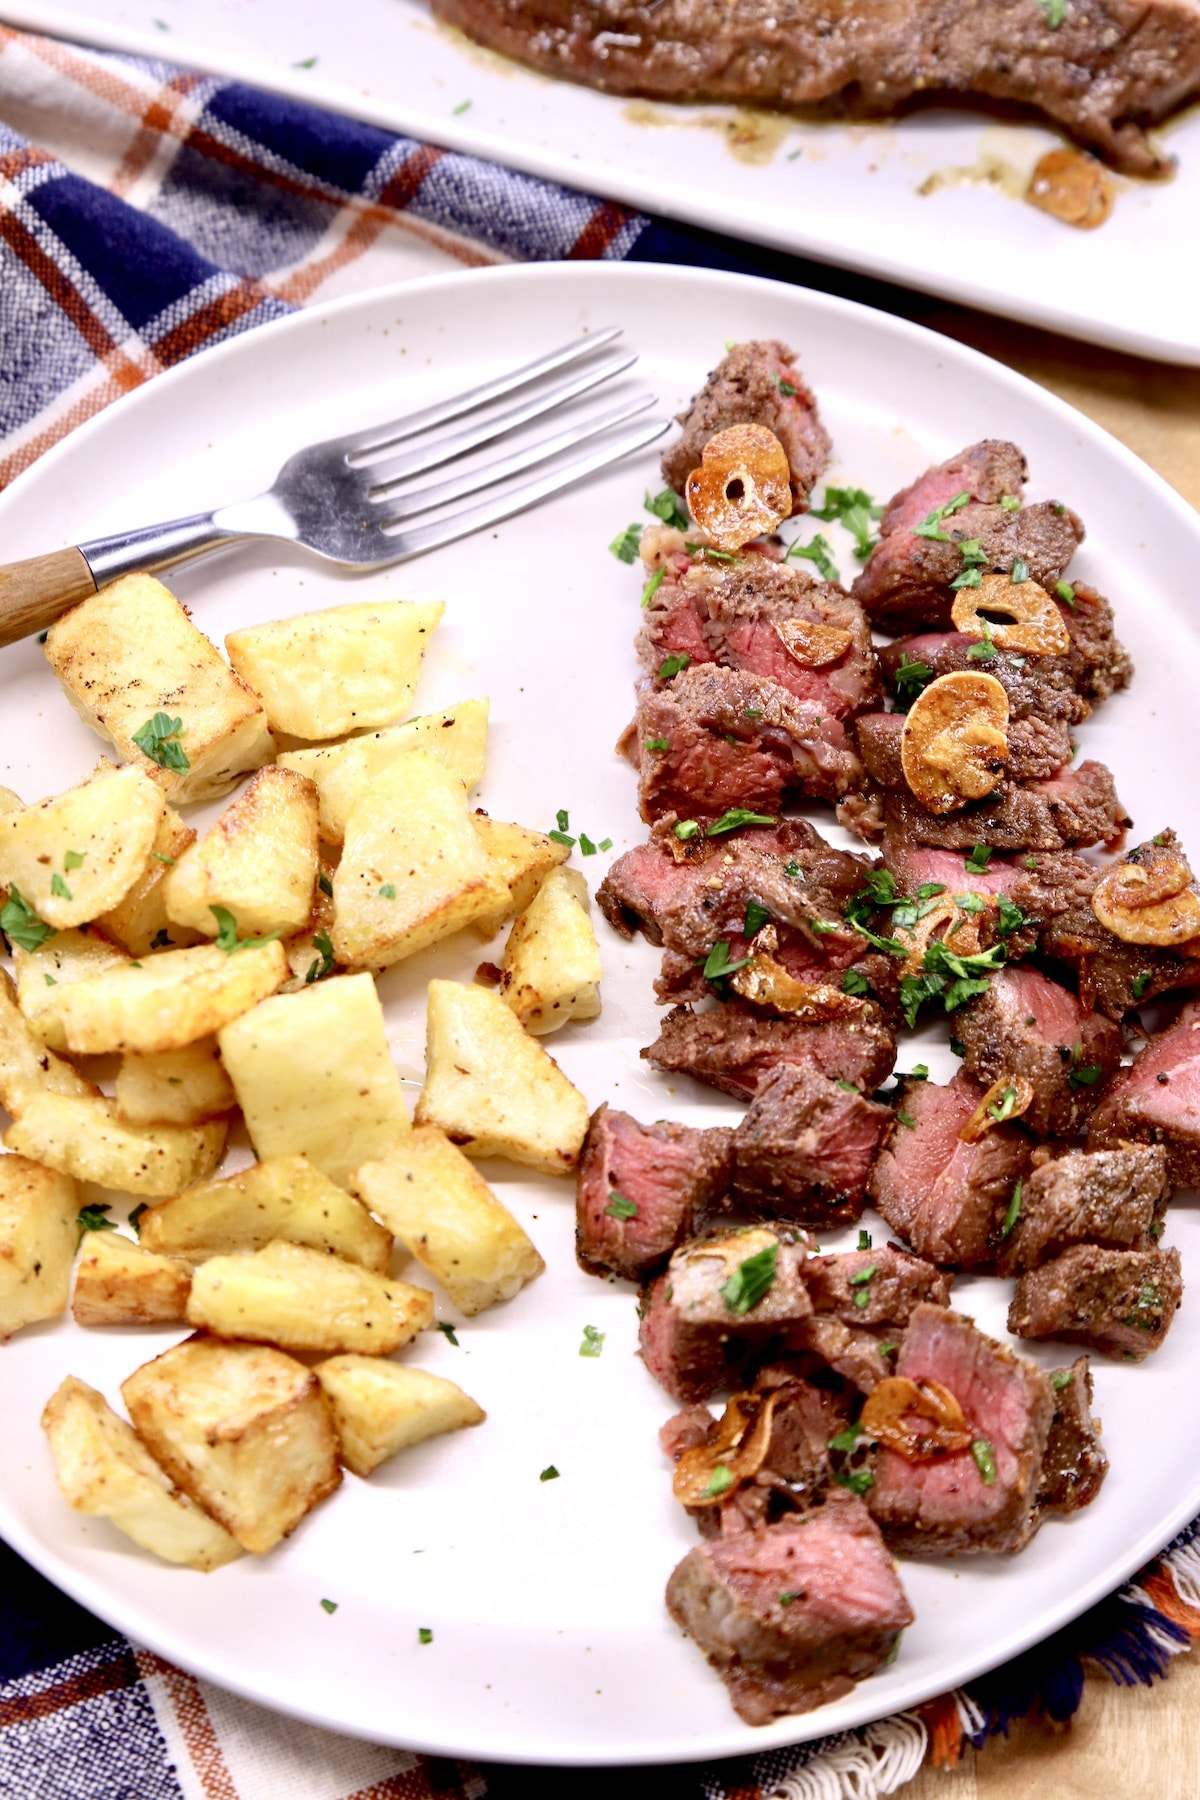 garlic butter steak tips cut into bites on a plate with roasted potatoes